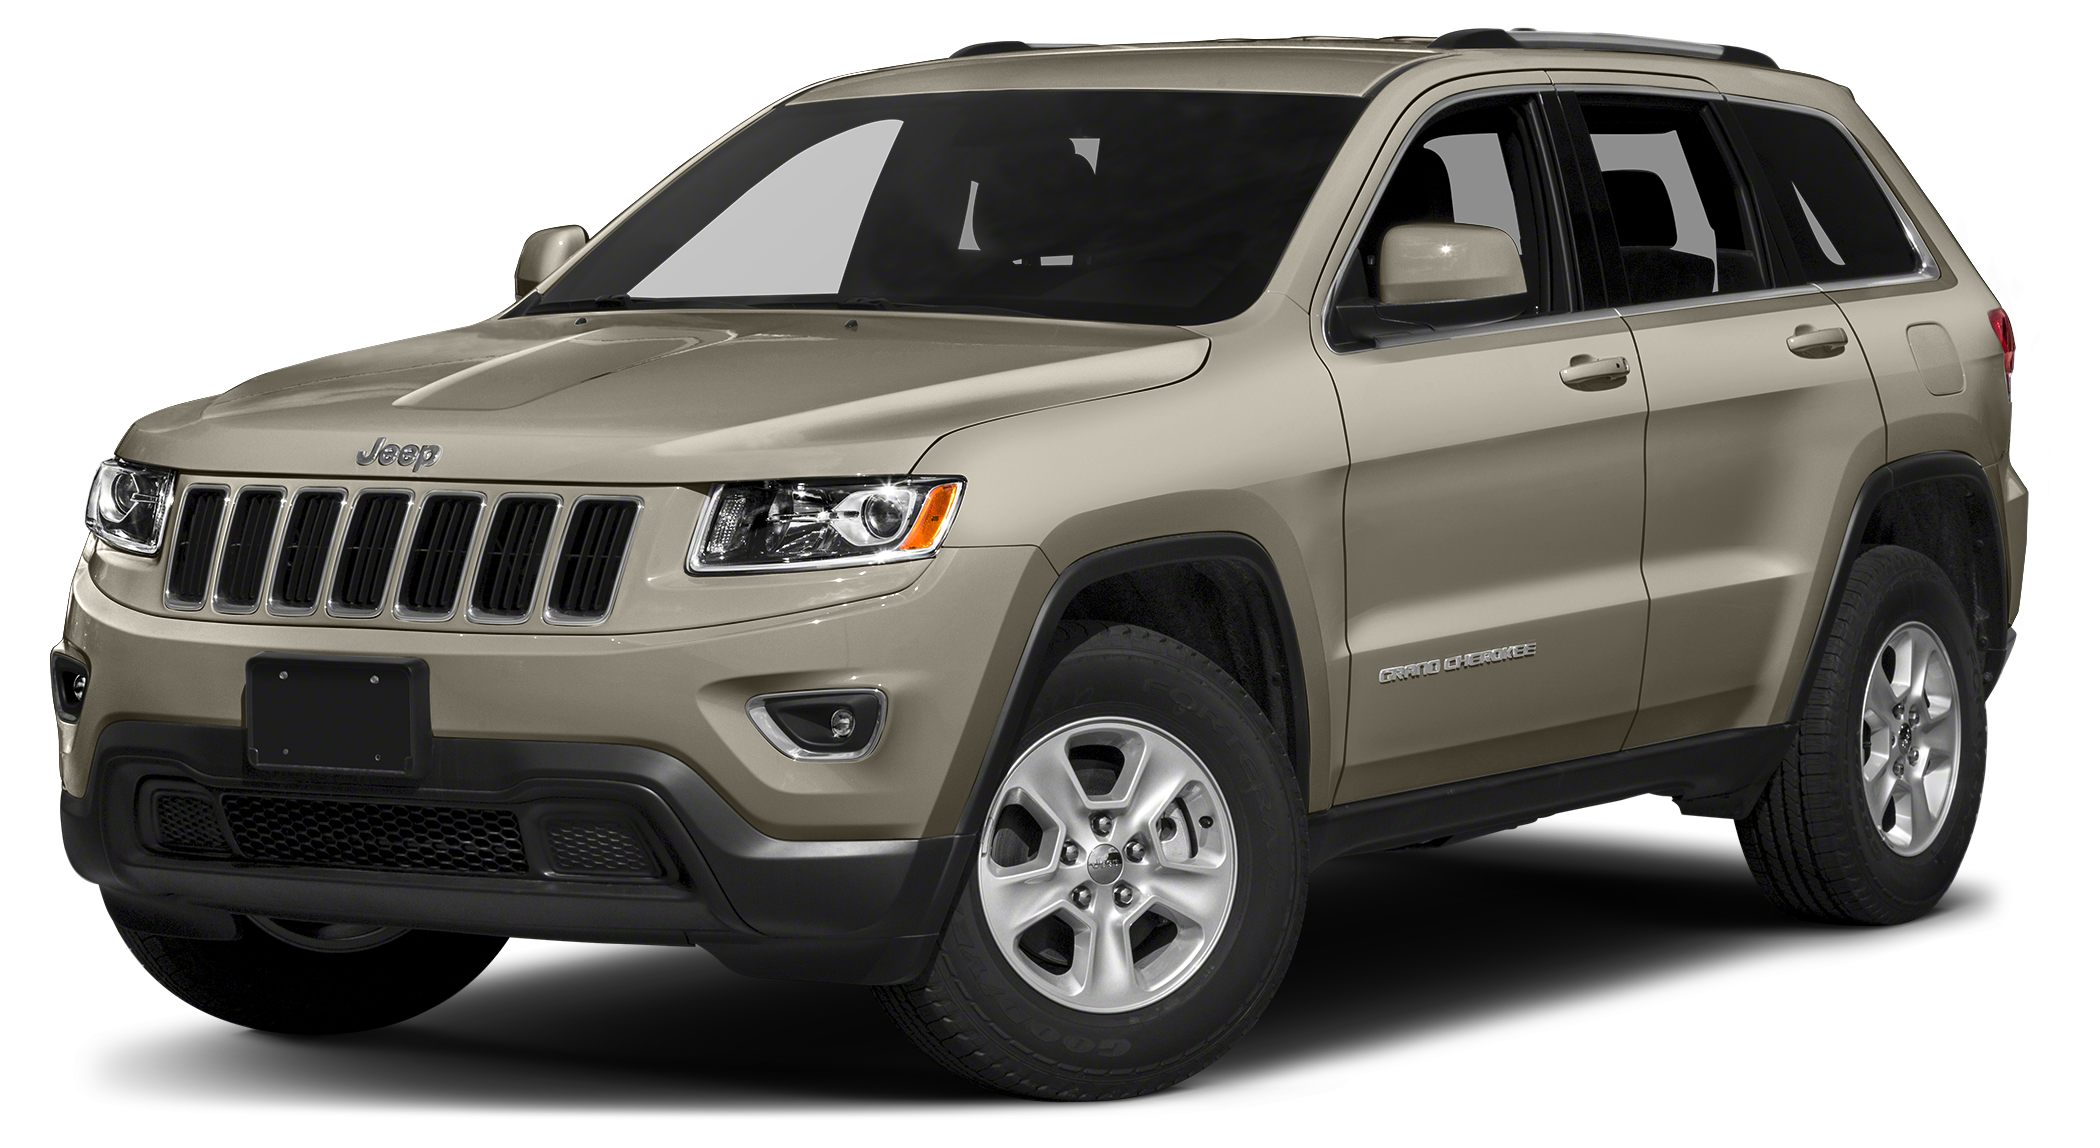 2016 Jeep Grand Cherokee Laredo Your lucky day This gas-saving Grand Cherokee will get you where